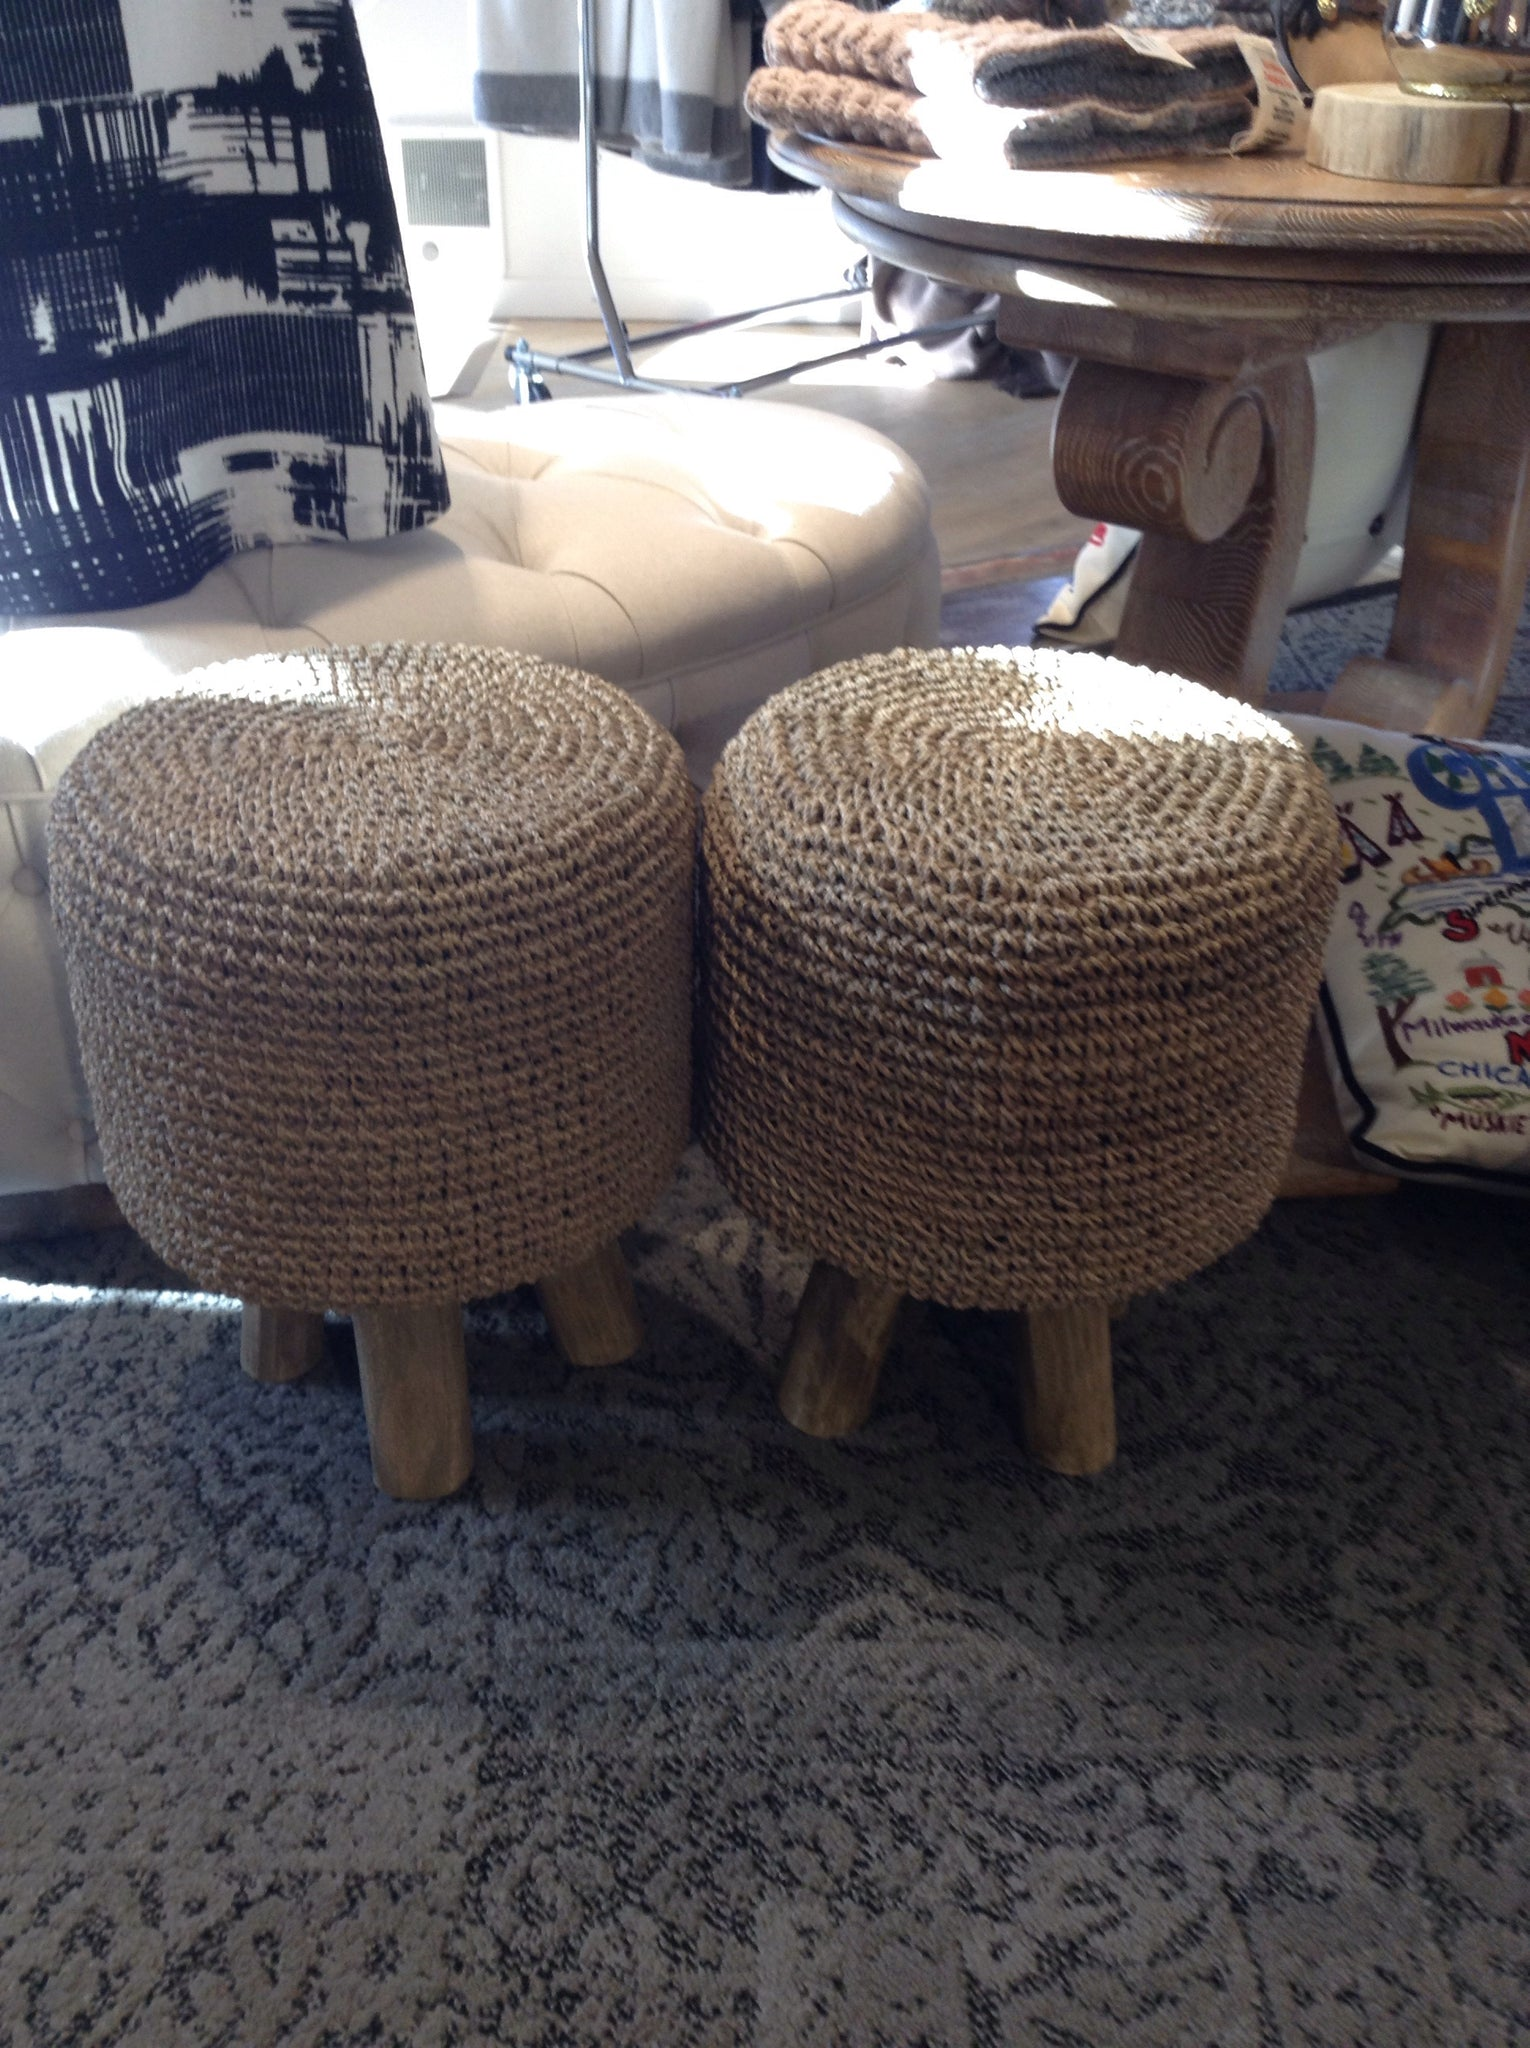 Zodax Equestrian Woven Foot Stool